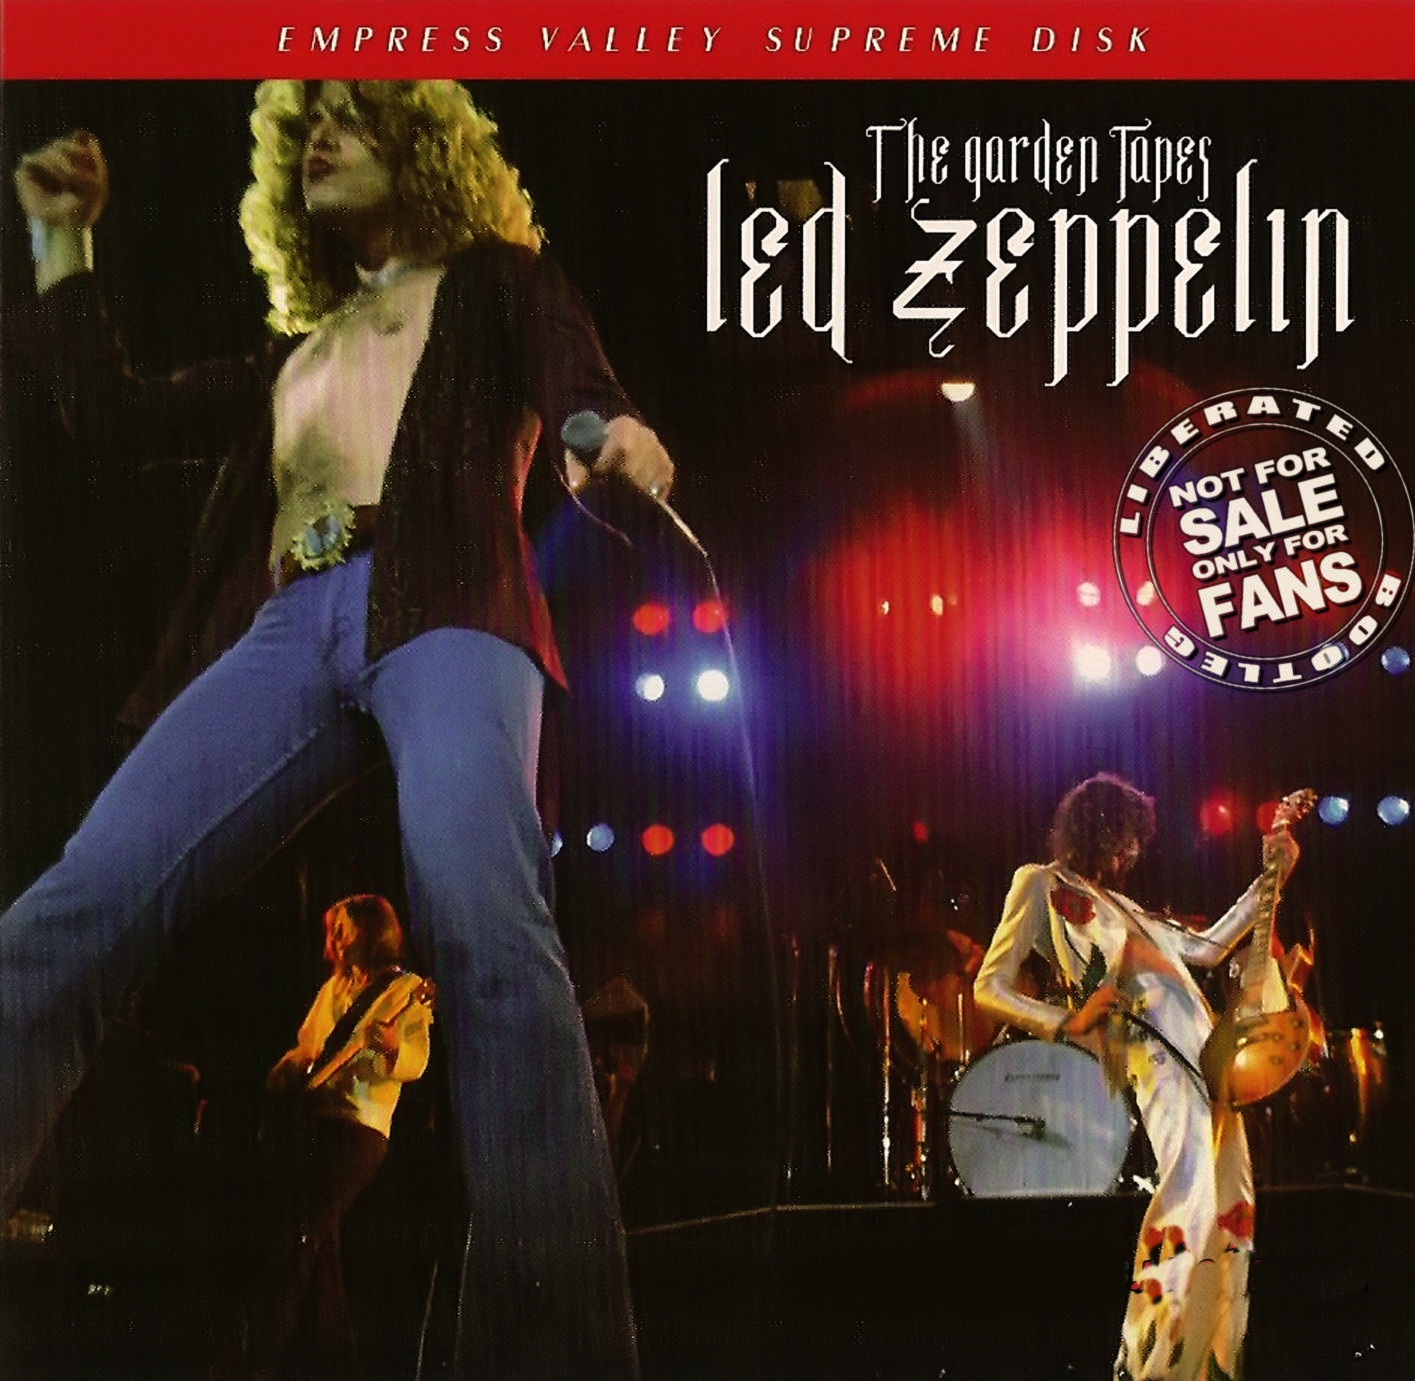 1977 - Led Zeppelin - The Garden Tapes - New York